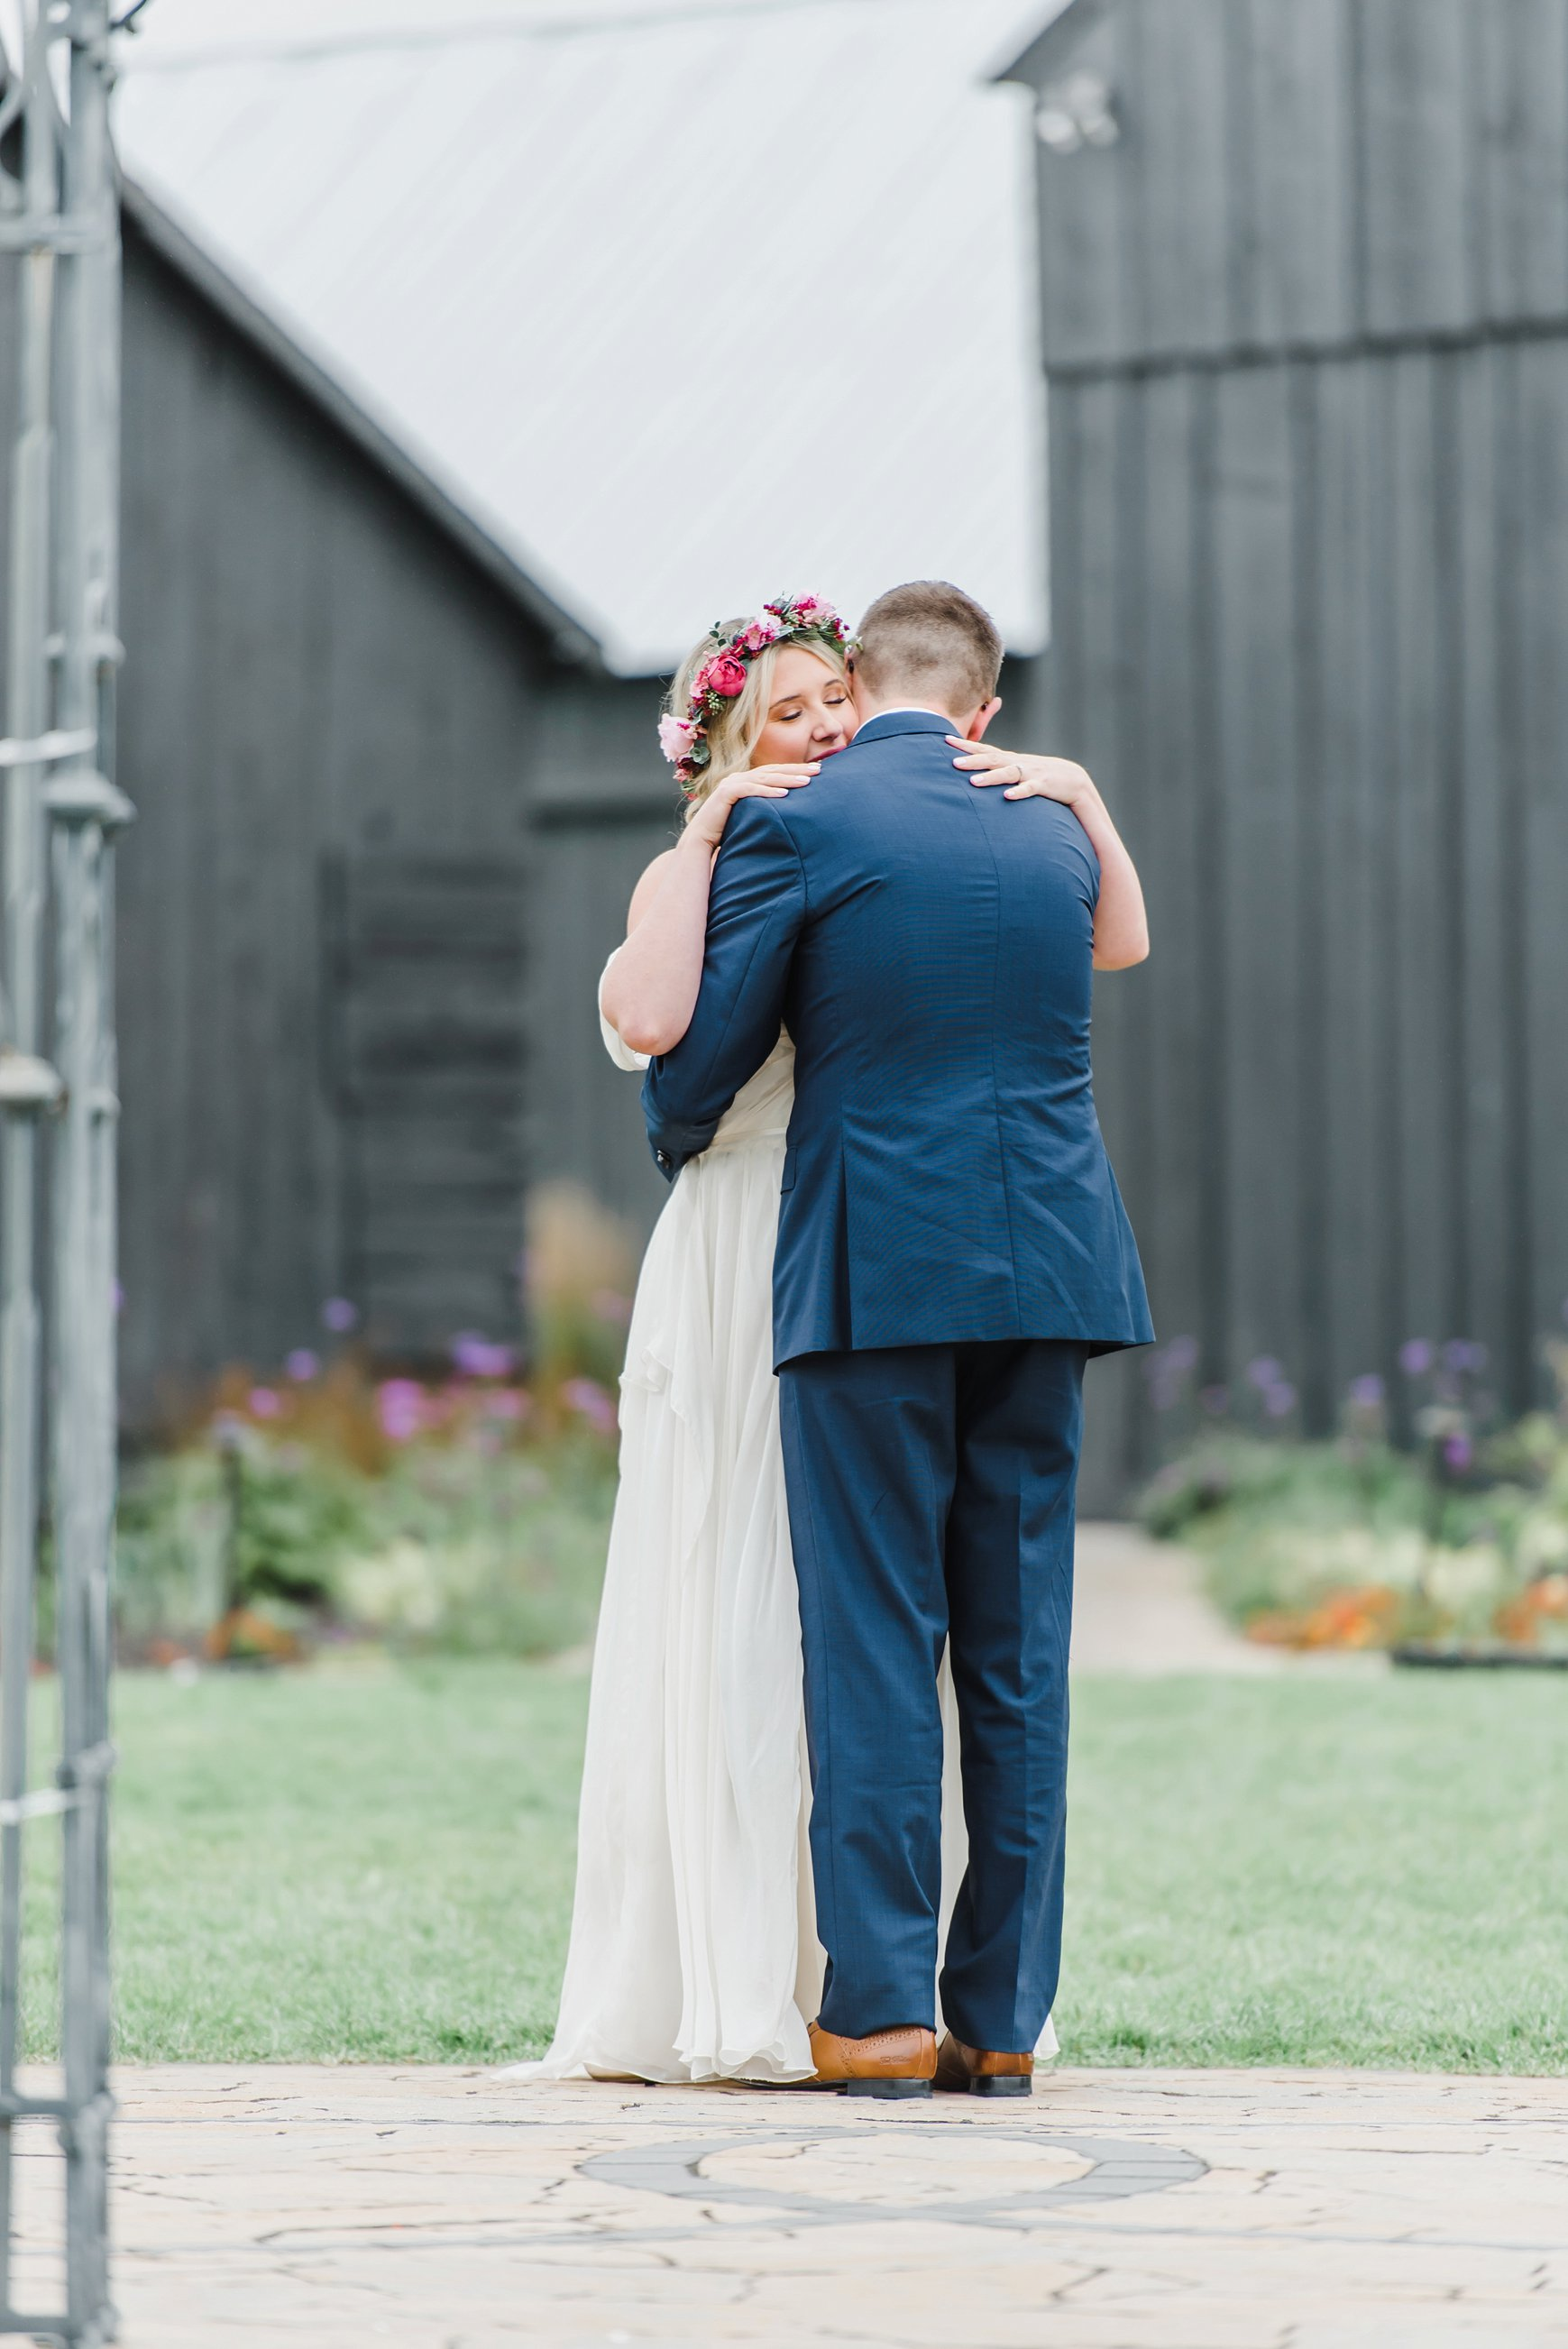 light airy indie fine art ottawa wedding photographer | Ali and Batoul Photography_0774.jpg